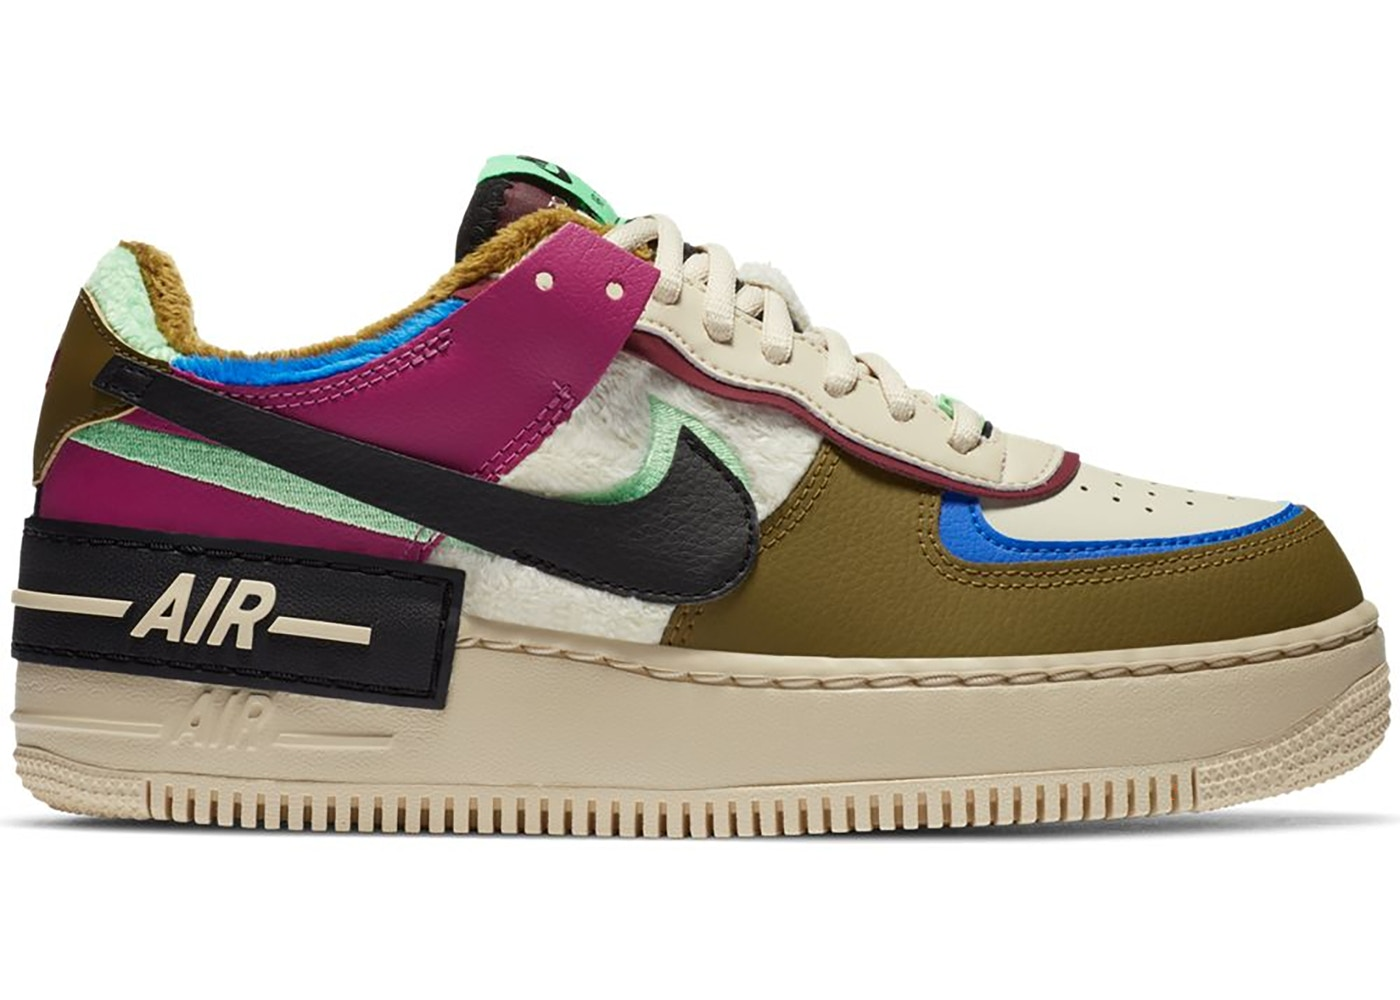 Nike Air Force 1 Shadow Cactus Flower Olive Flak W Ct1985 500 The nike air force 1 shadow sapphire unboxing unboxing showing a up close look at the sneaker. nike air force 1 shadow cactus flower olive flak w